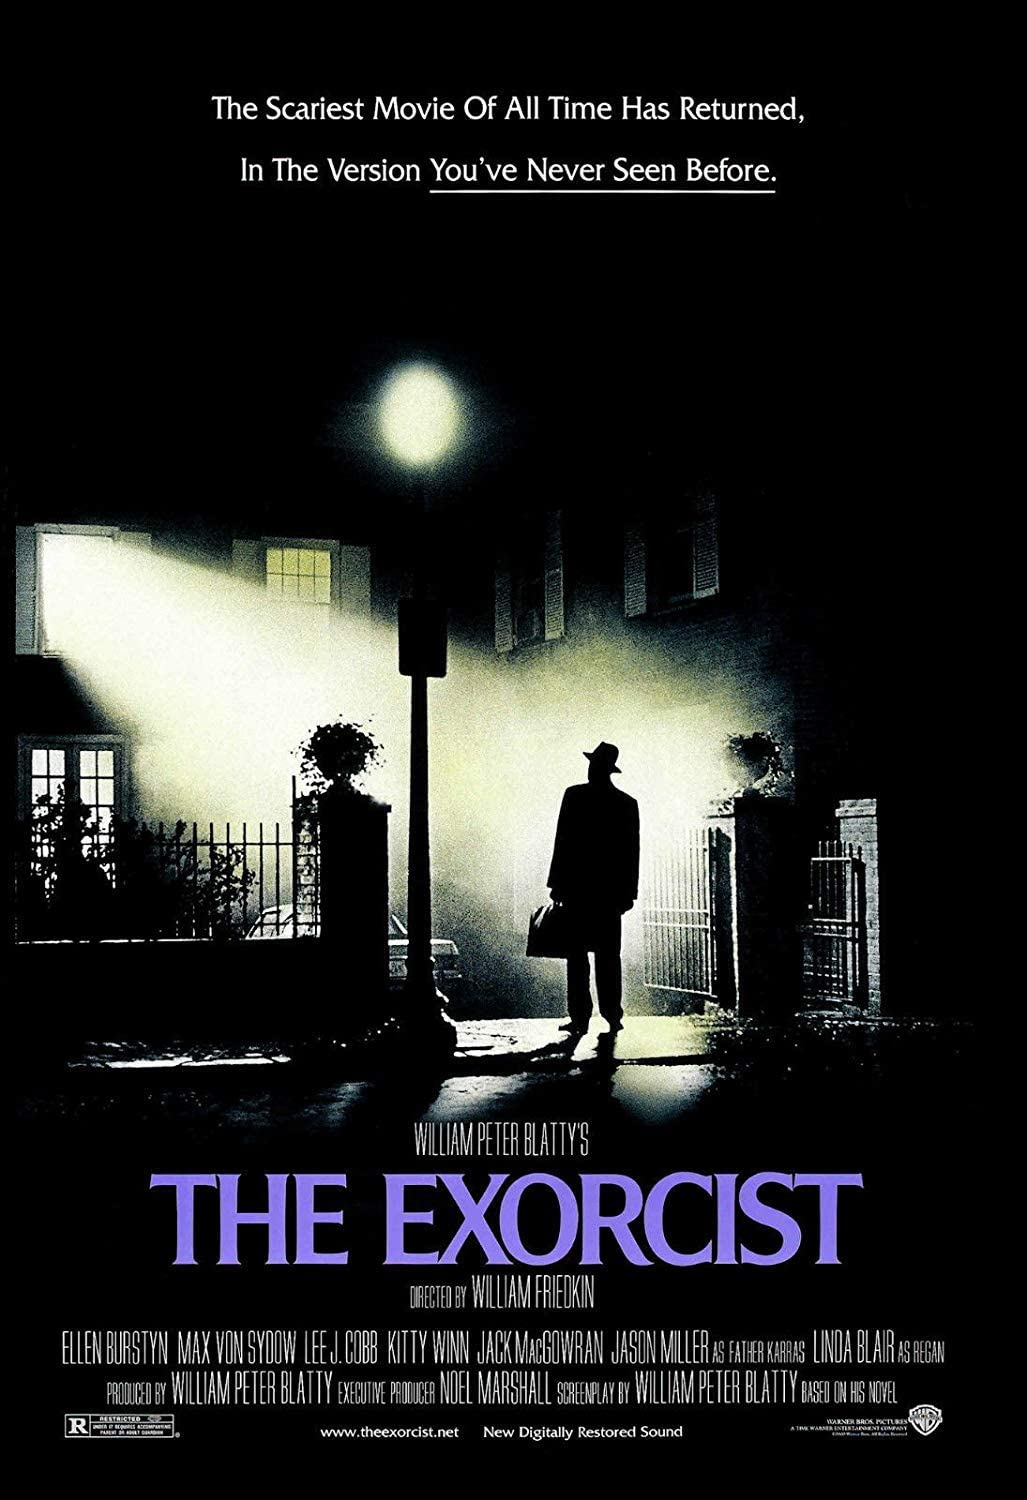 The Exorcist (Director's Cut) Poster